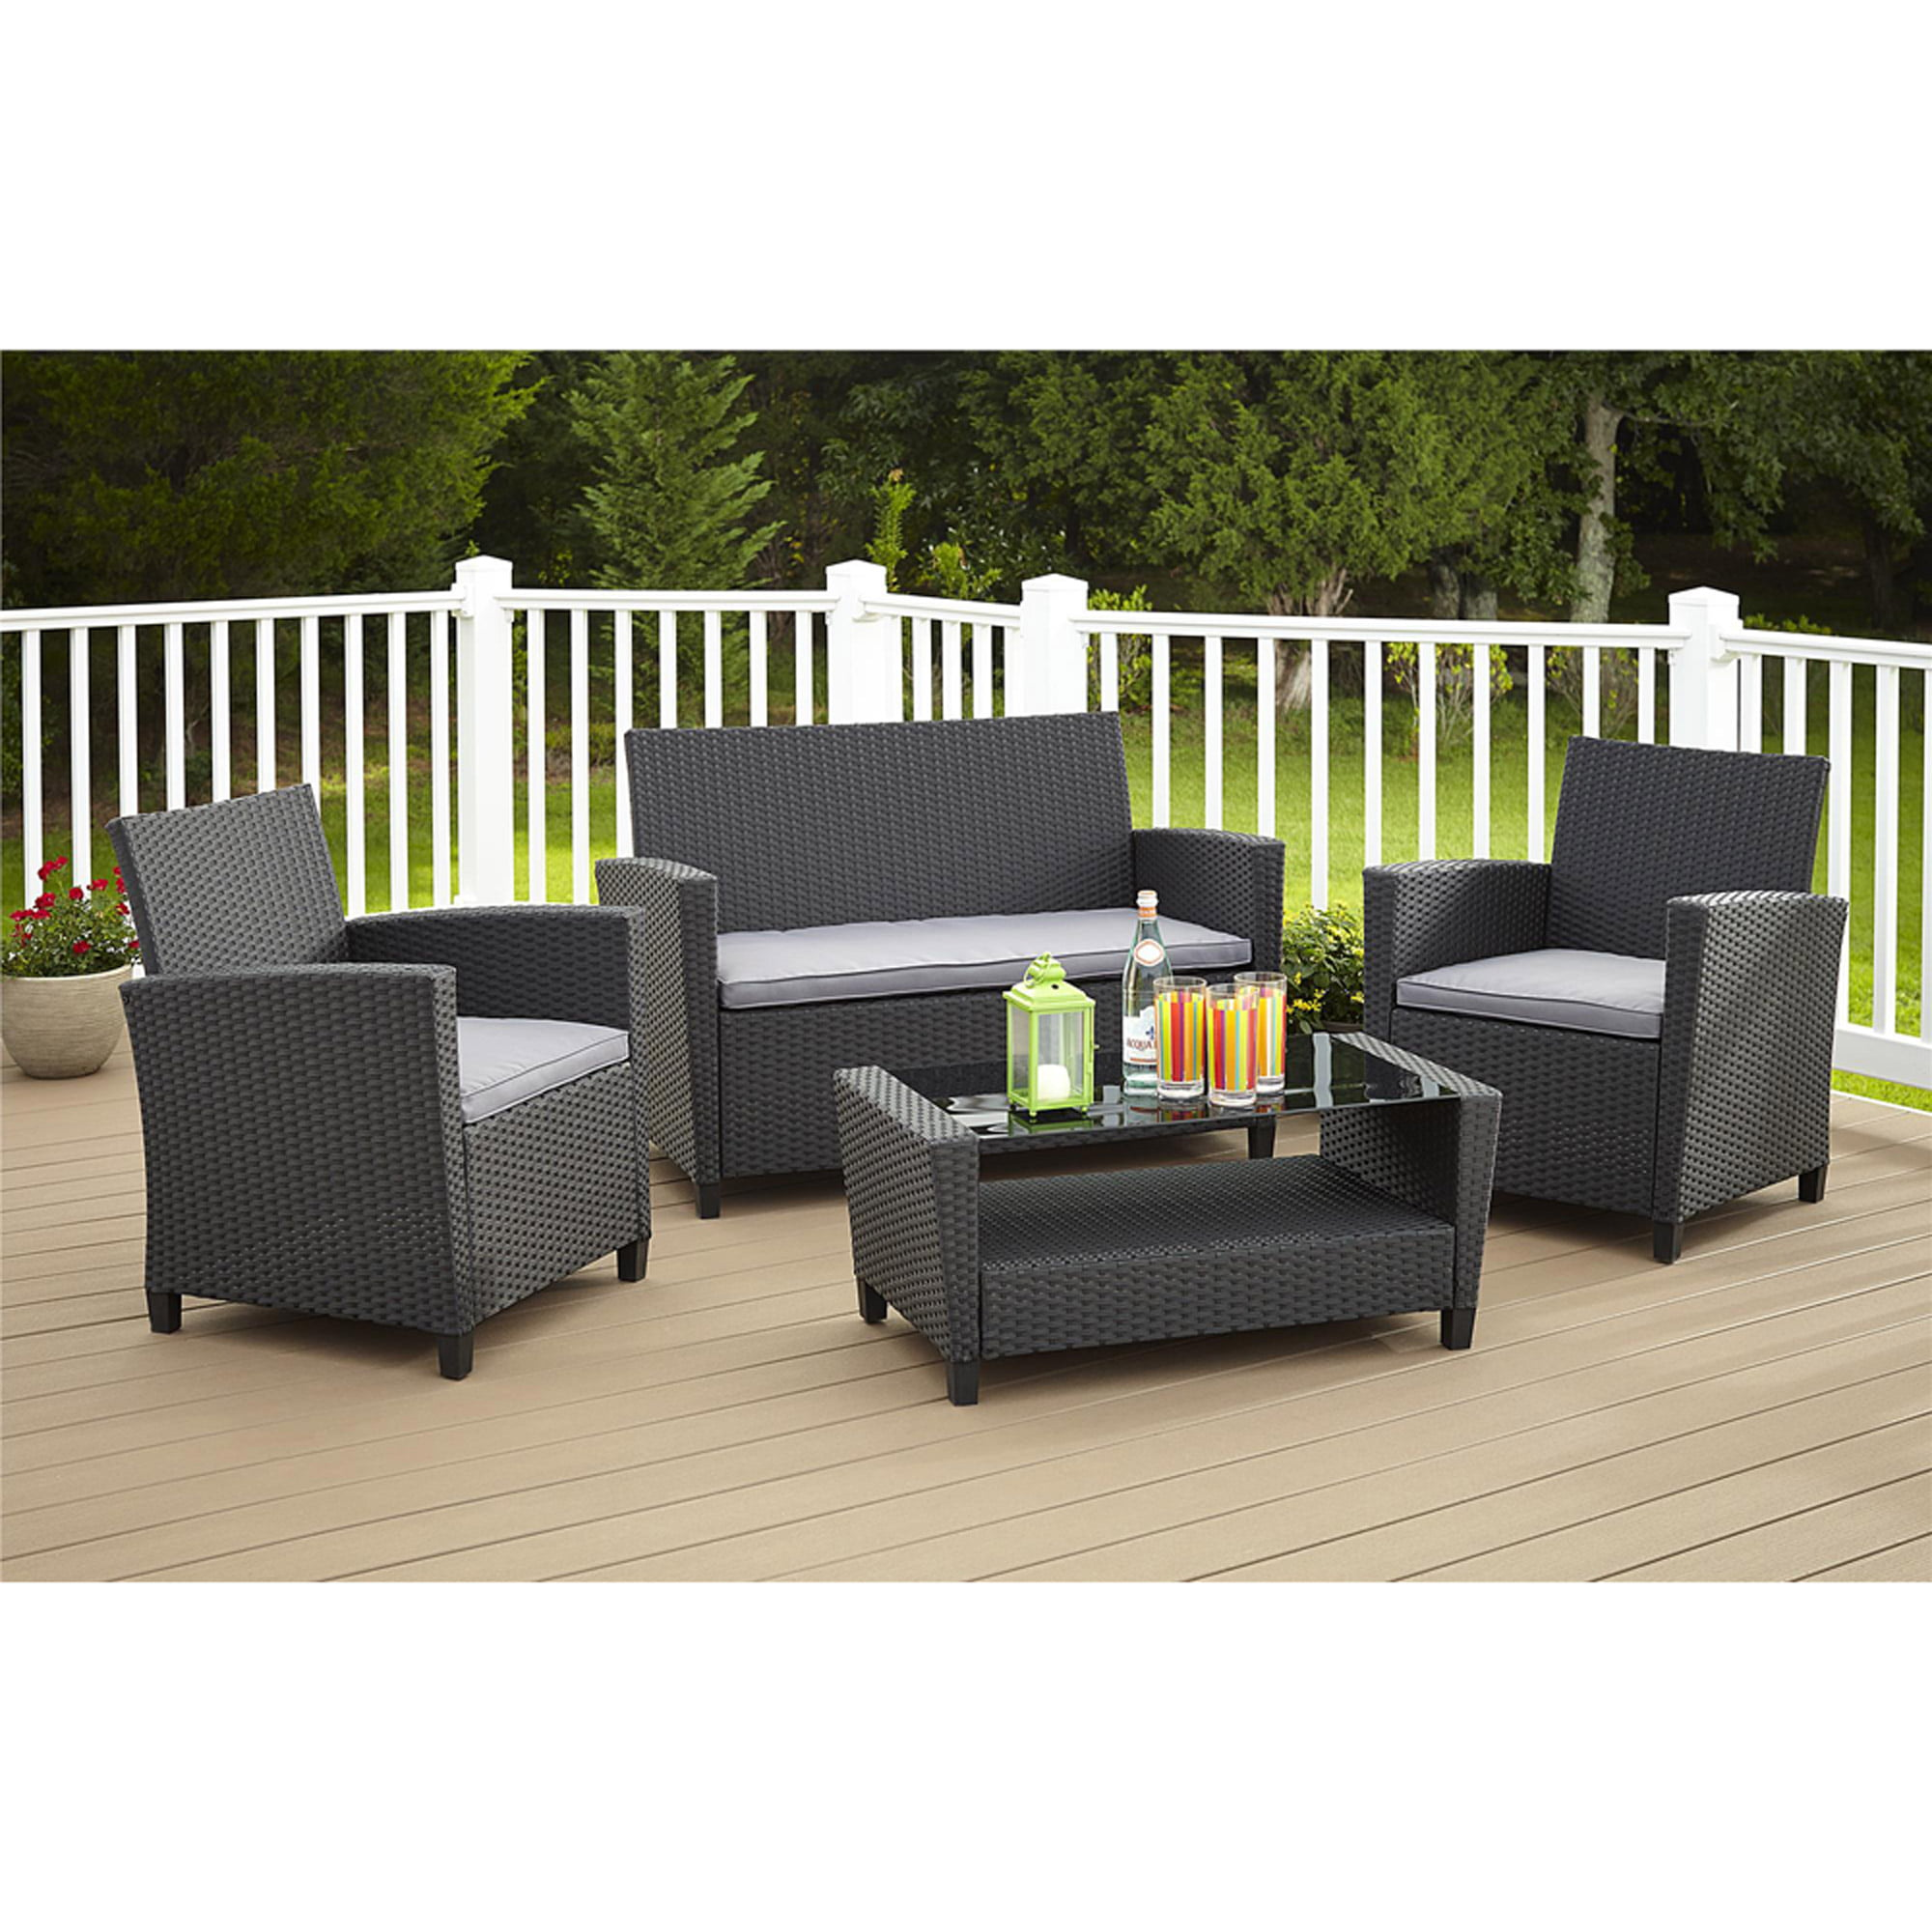 Best Choice Products 4 Piece Cushioned Patio Furniture Set W/ Loveseat, 2  Chairs, Coffee Table Beige   Walmart.com Part 31